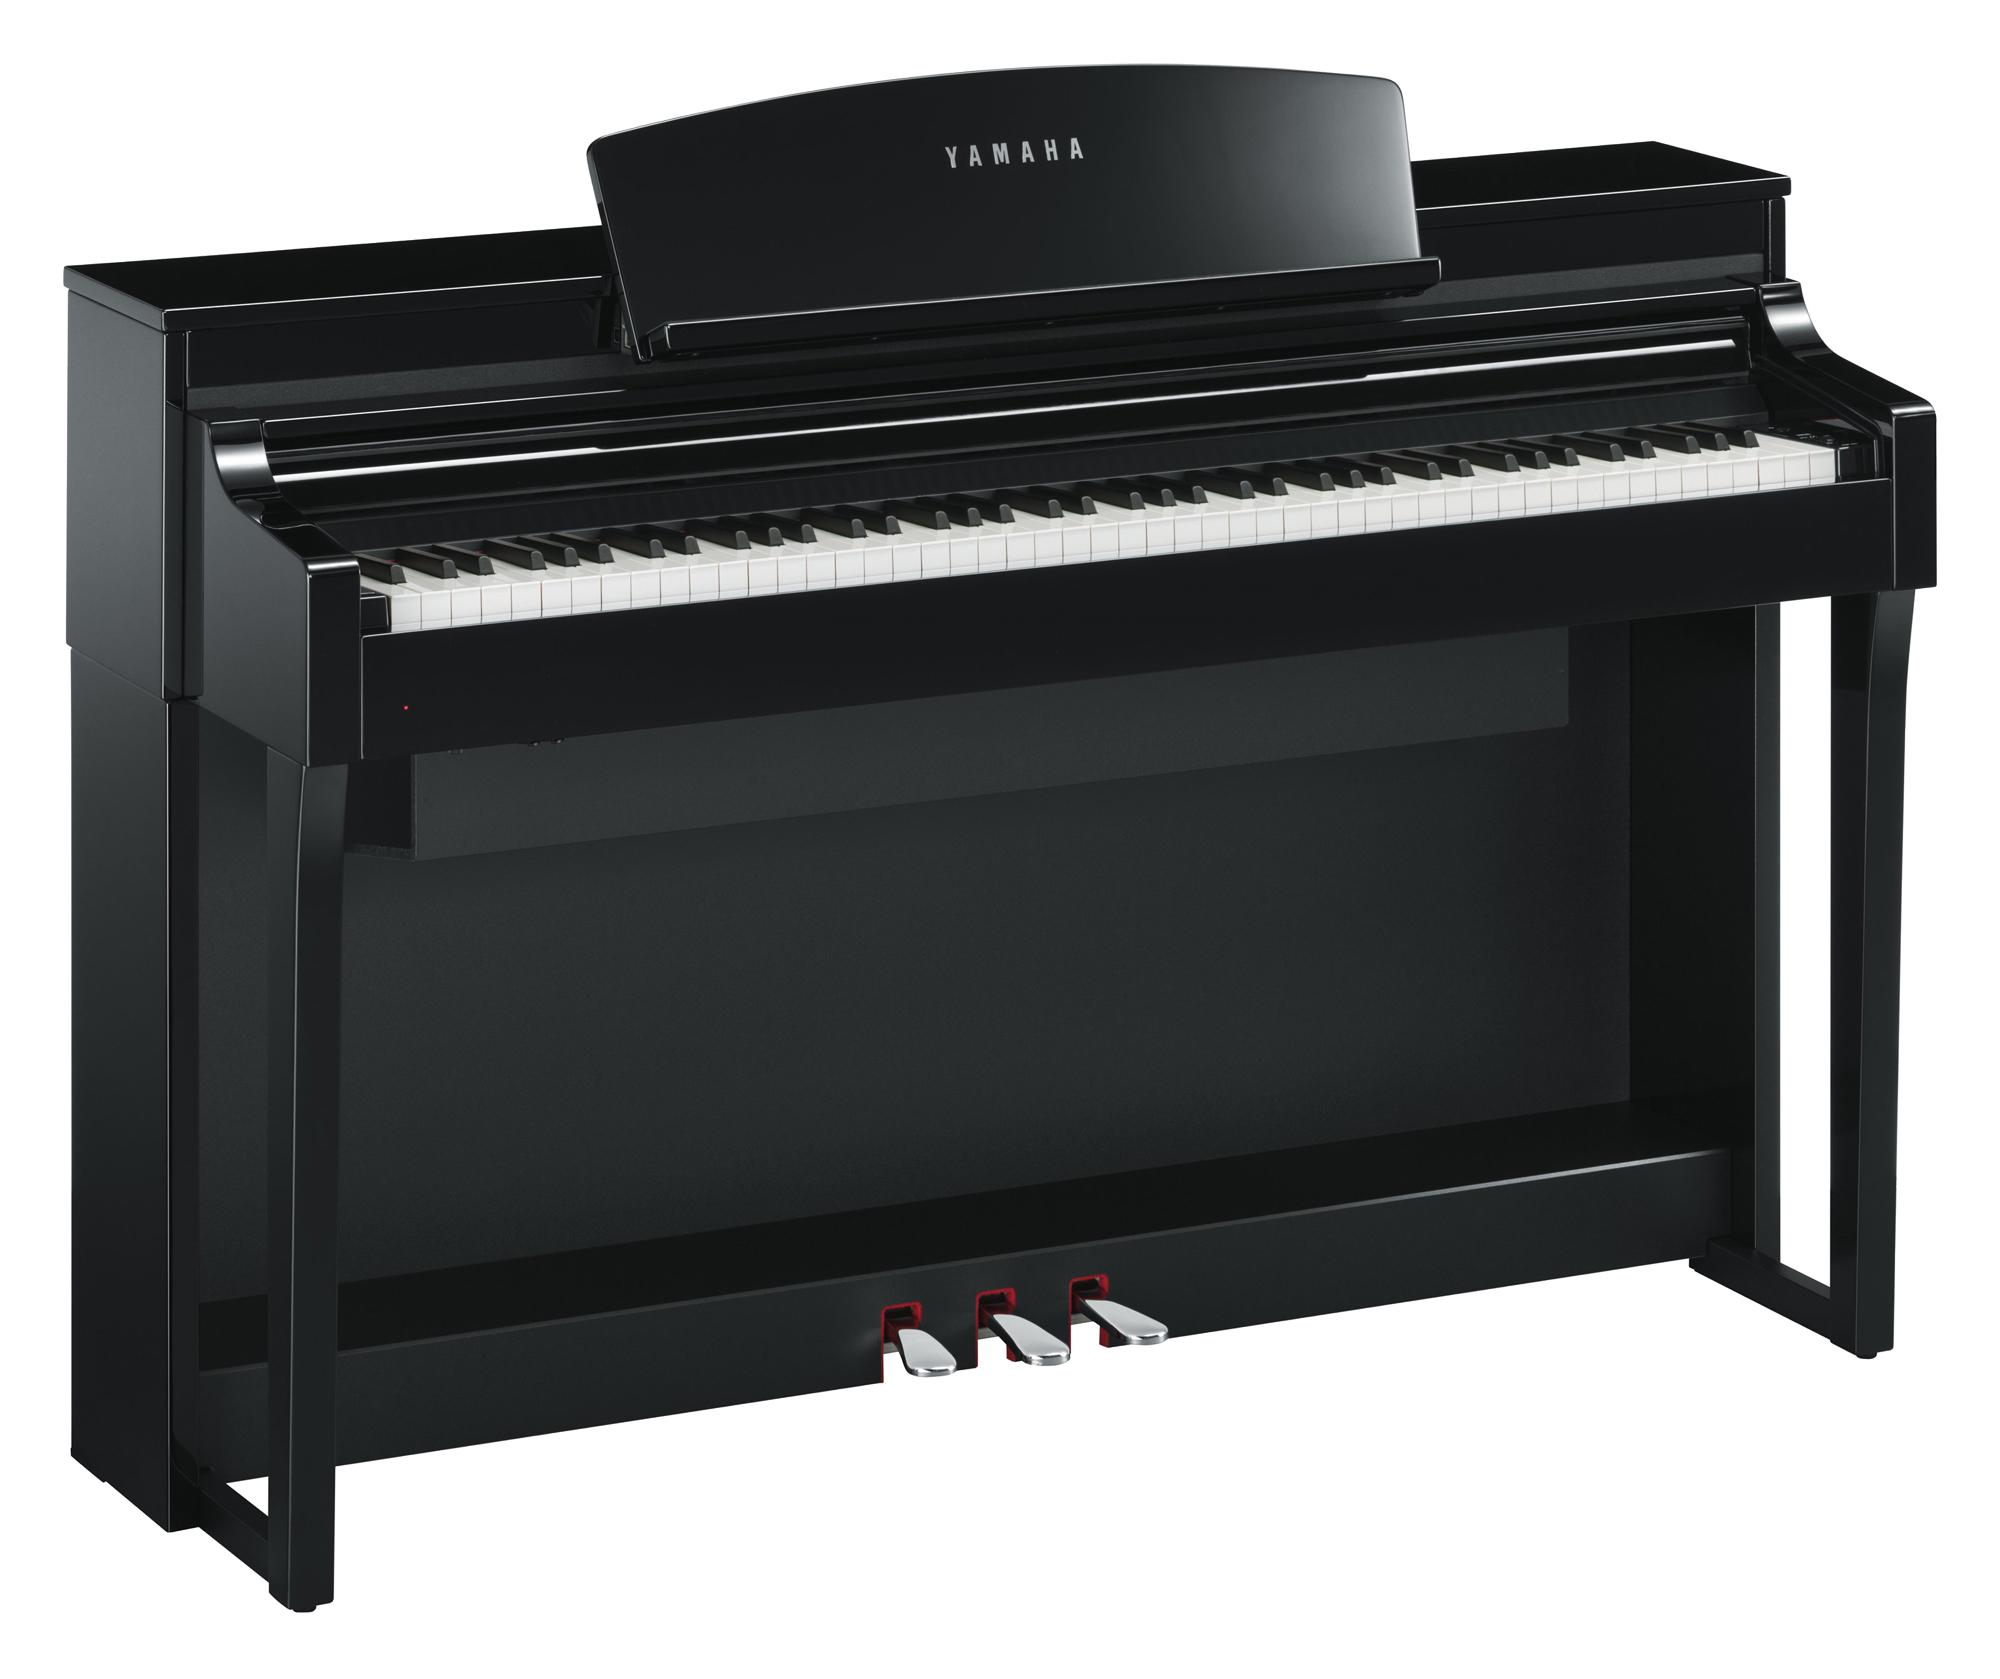 yamaha csp 150 pe digitalpiano schwarz hochglanz. Black Bedroom Furniture Sets. Home Design Ideas